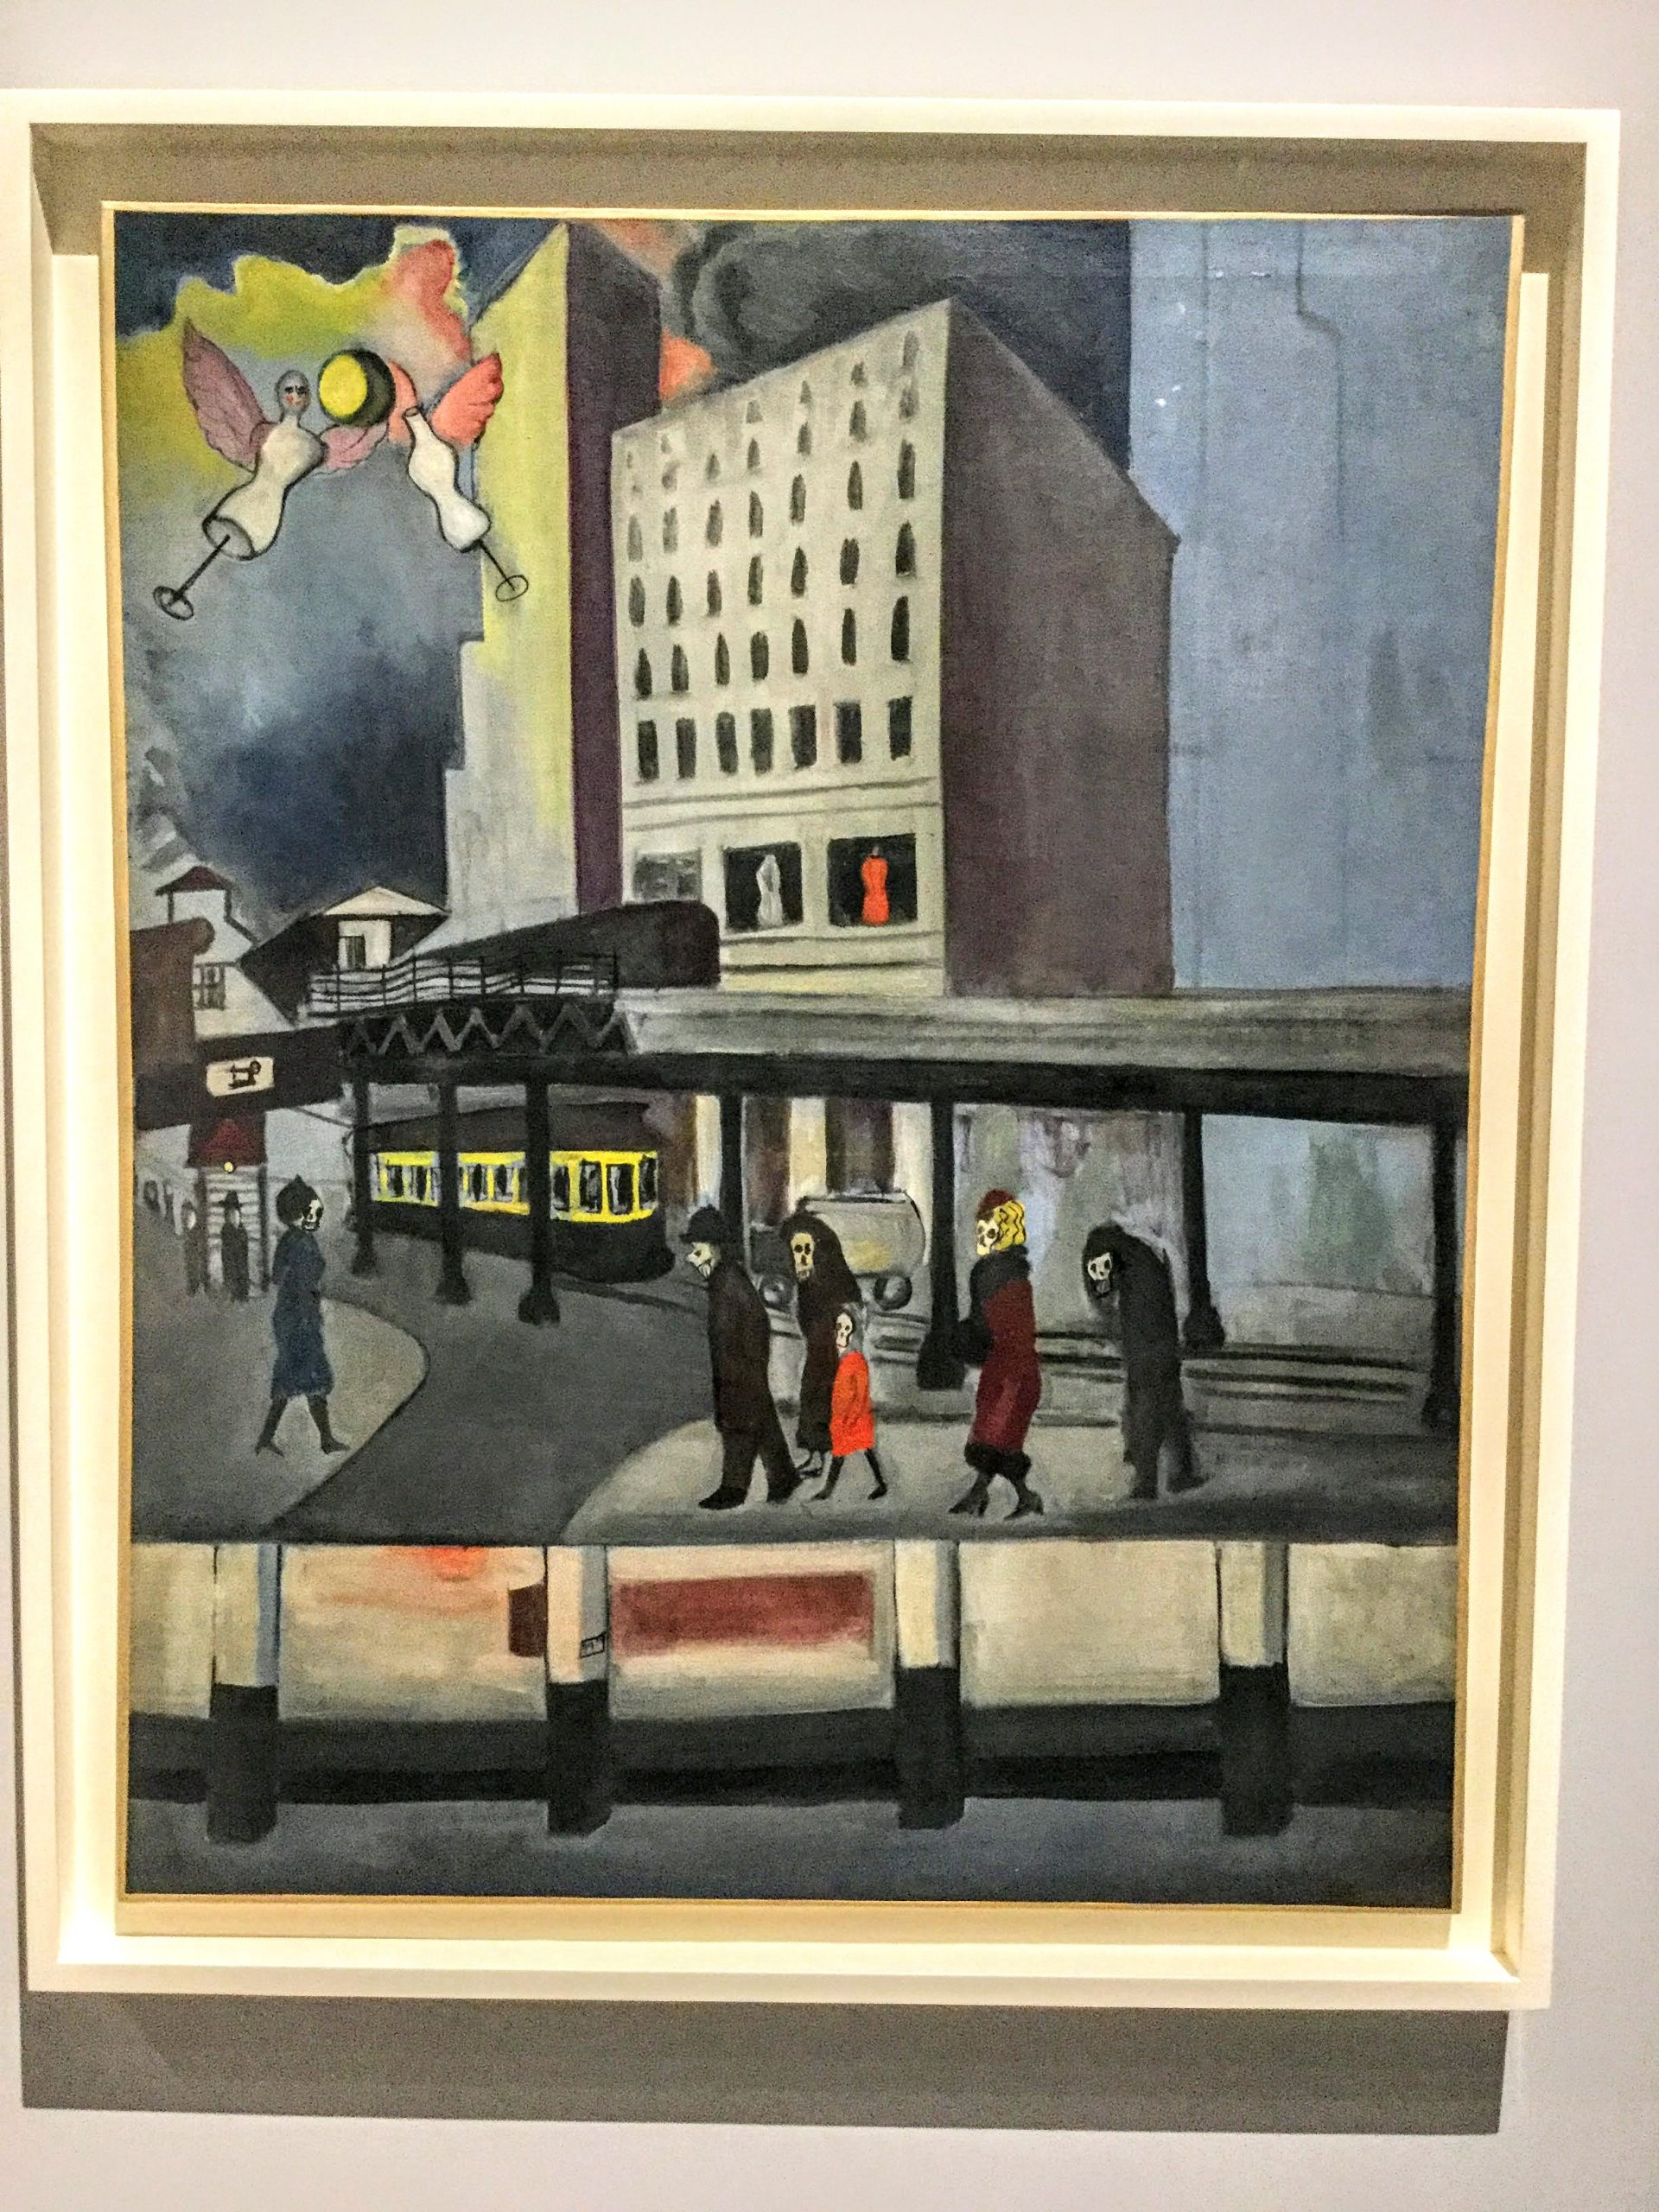 Synthesis of New York - The Great Depression by Alice Neel